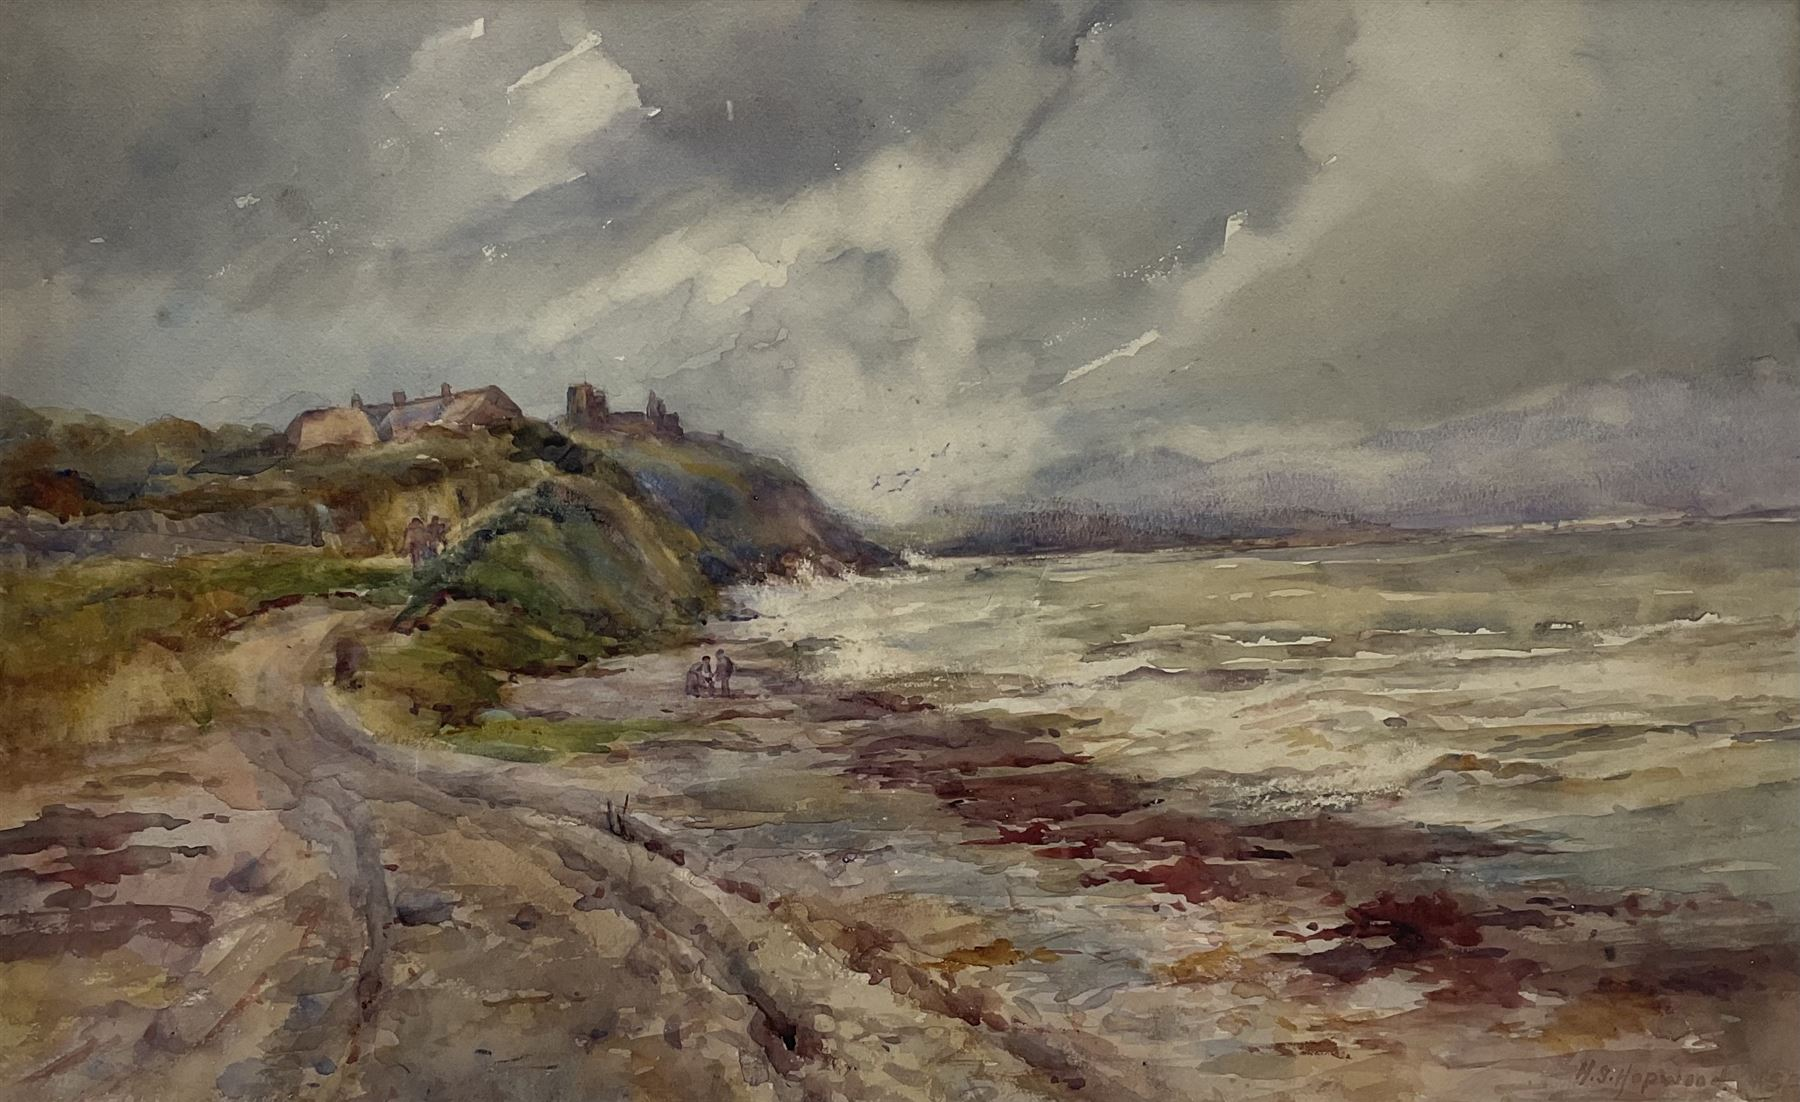 Henry Silkstone Hopwood (Staithes Group 1860-1914): Coastal scene with Figures and Cottages